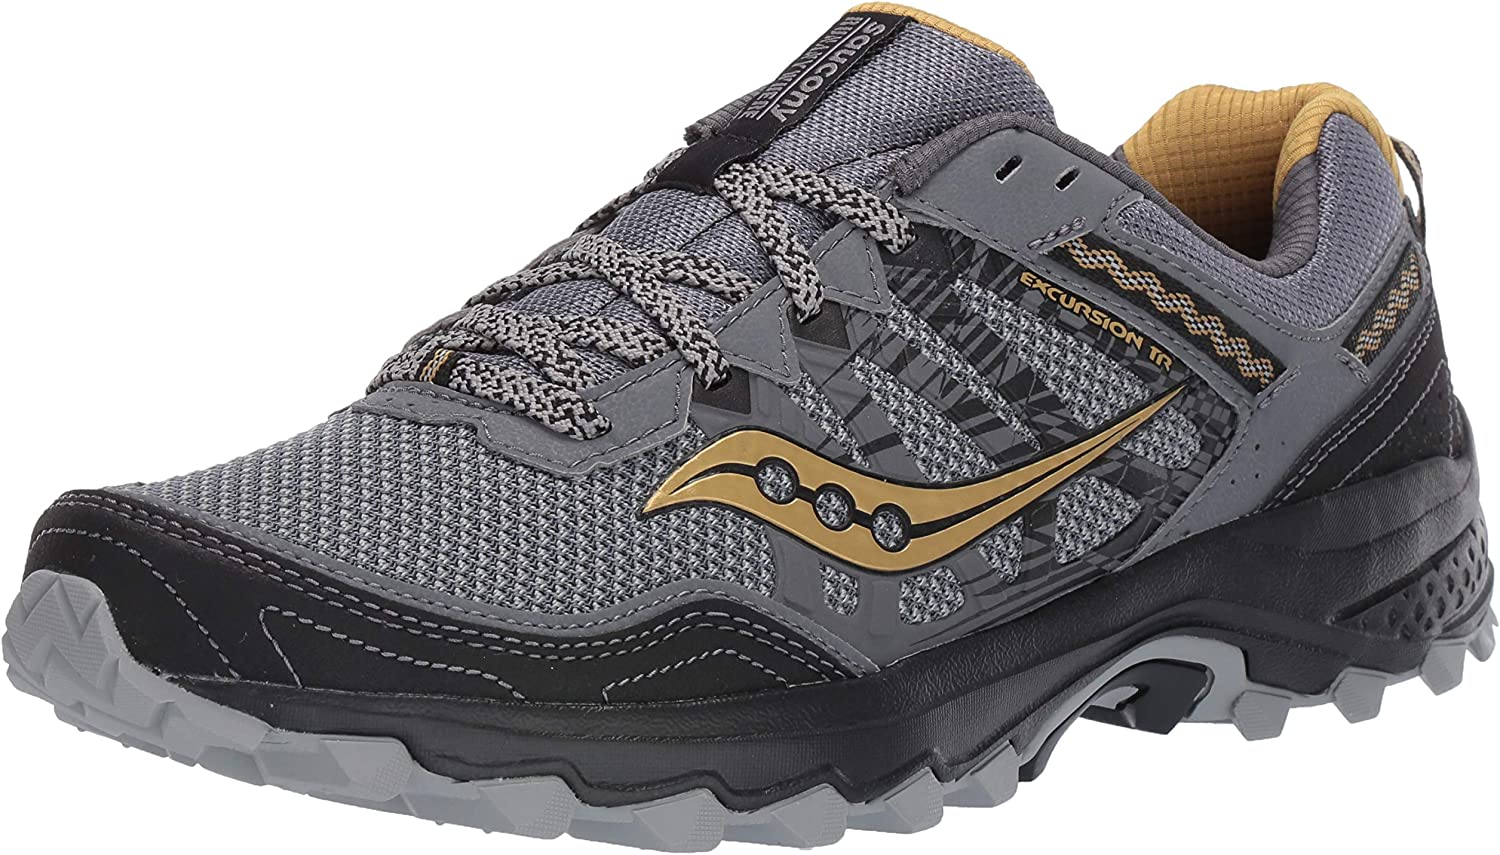 Saucony Mens S20451-5 Trail Running shoes